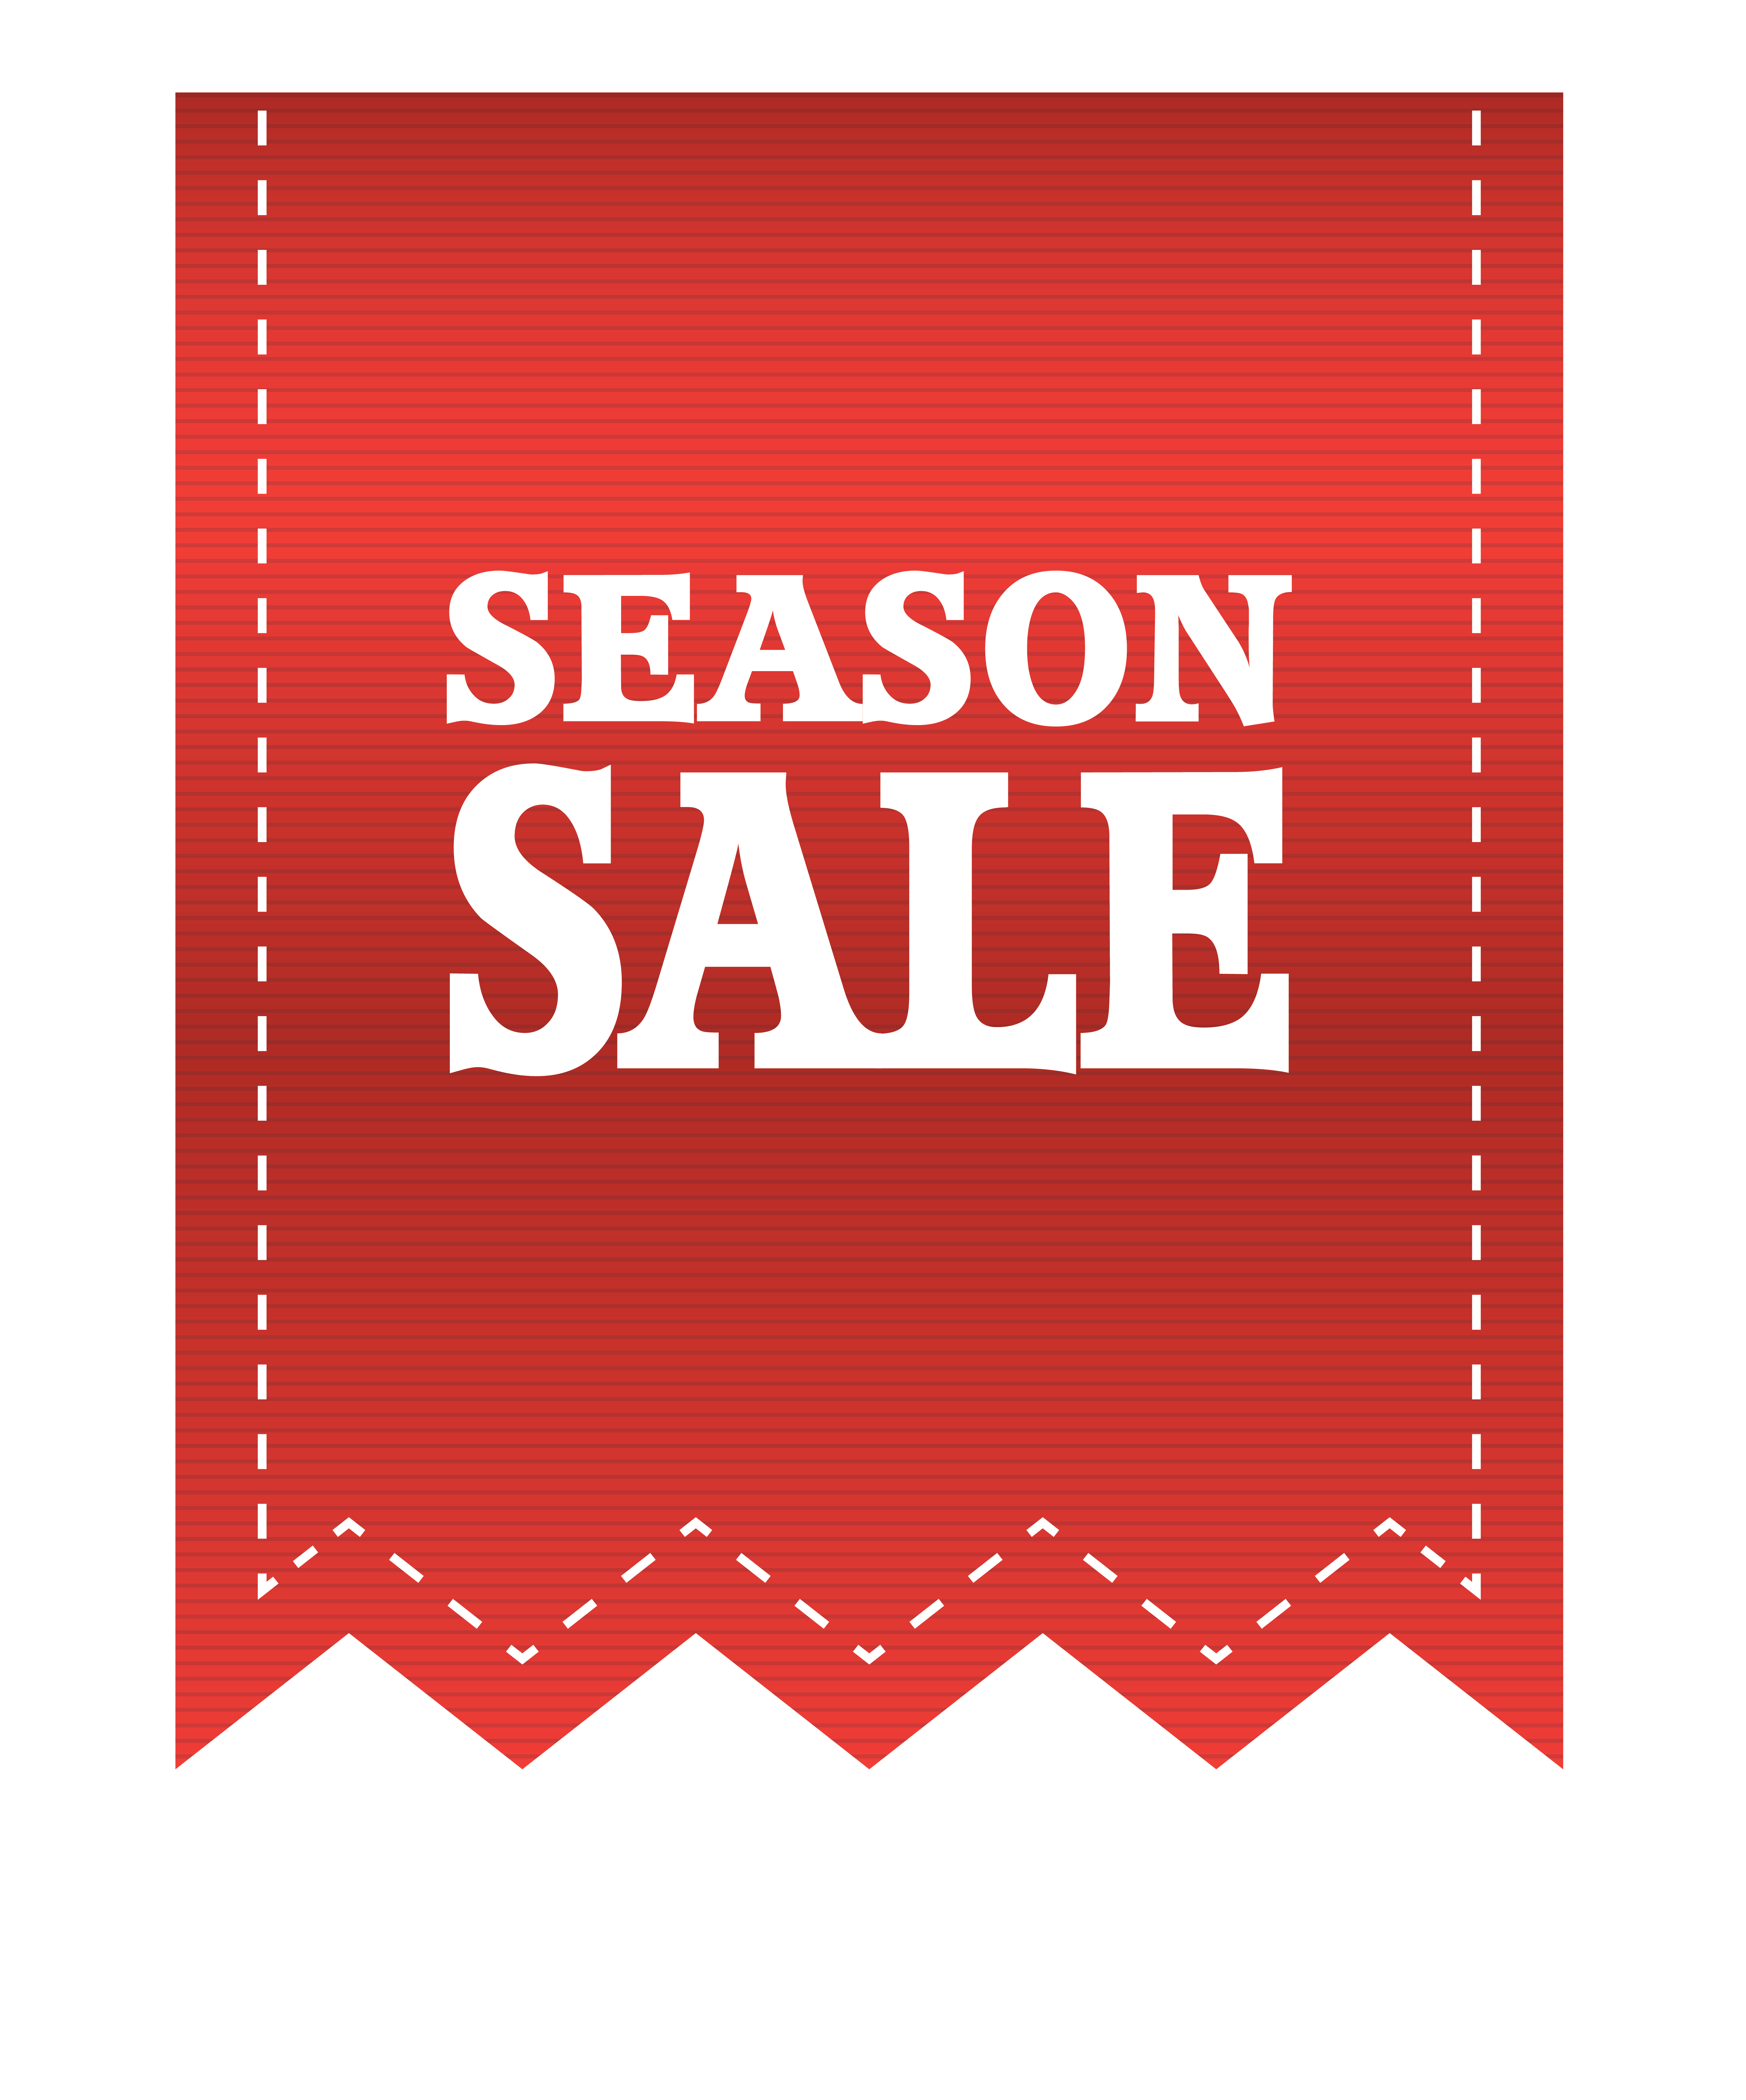 Label clipart red. Season sale png image